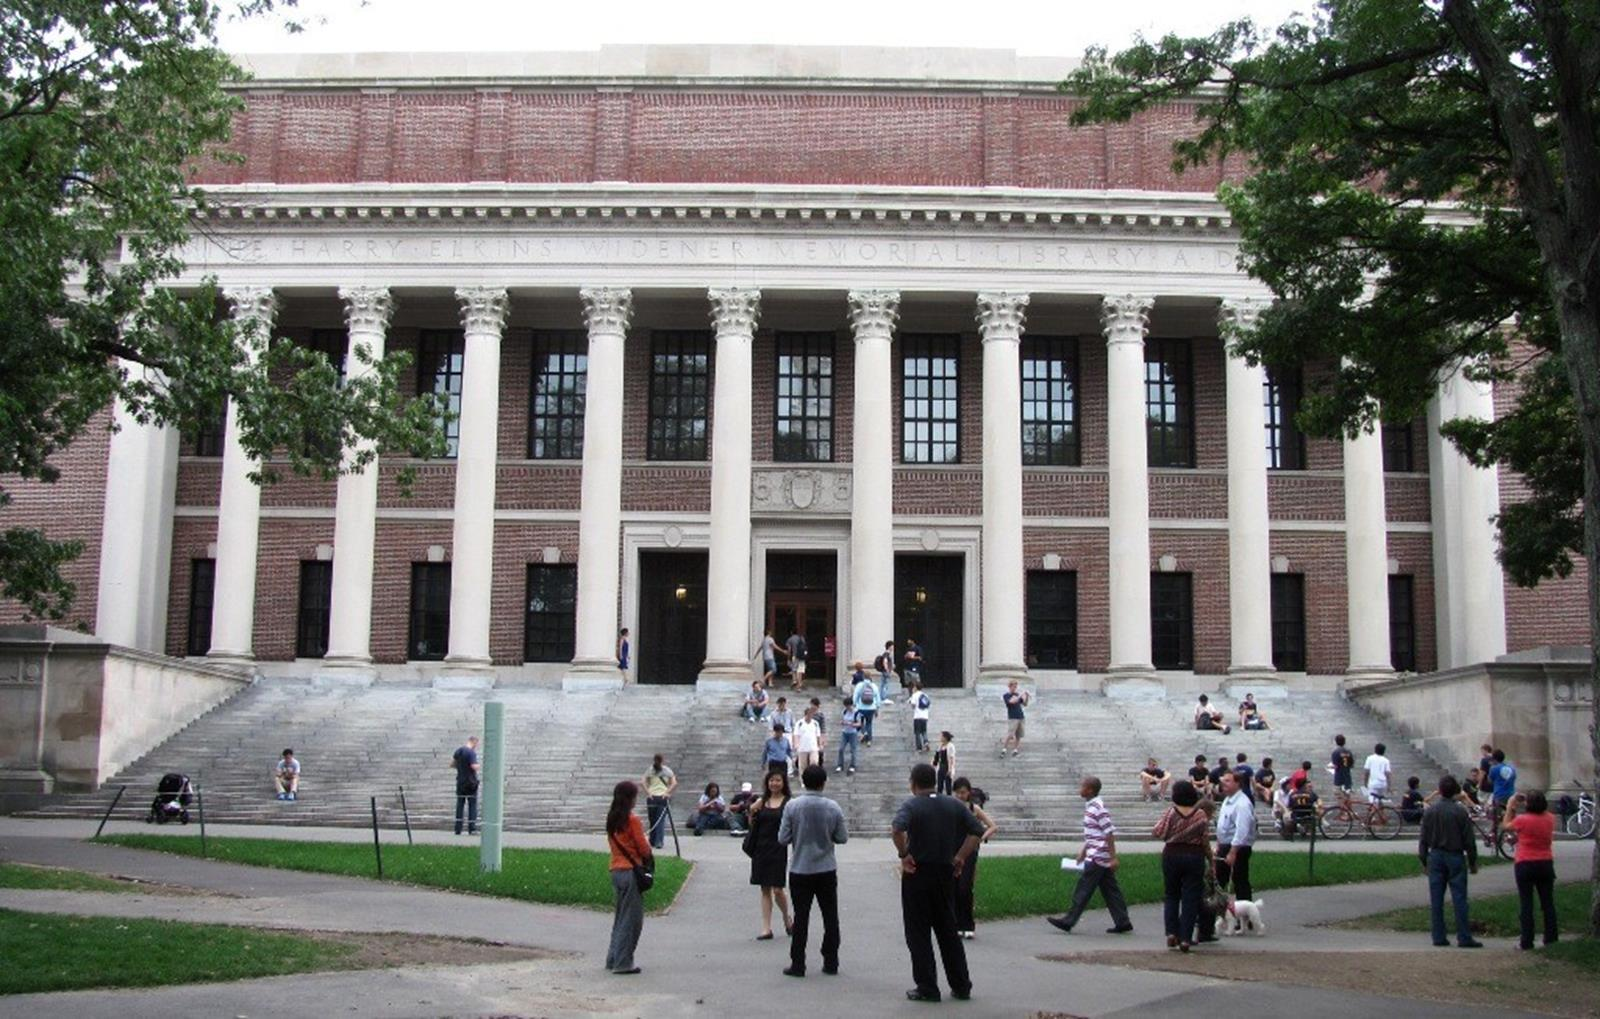 The Widener Library at Harvard University. Credit: John Phelan at en.wikipedia